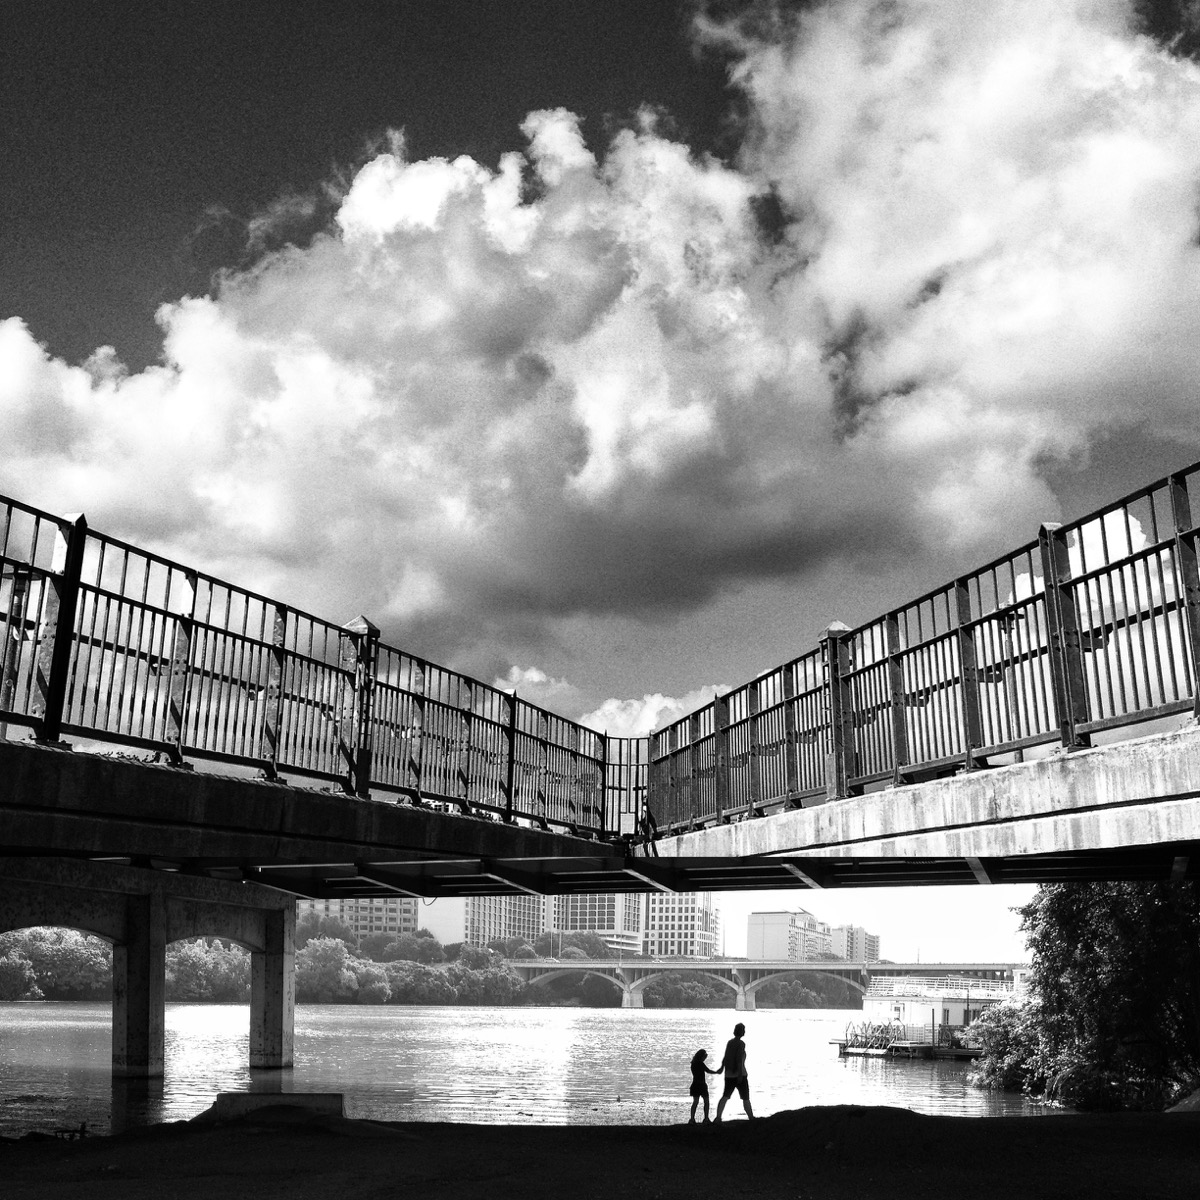 Inkedfingers photo in black and white of parent and child walking on waterfront below bridge